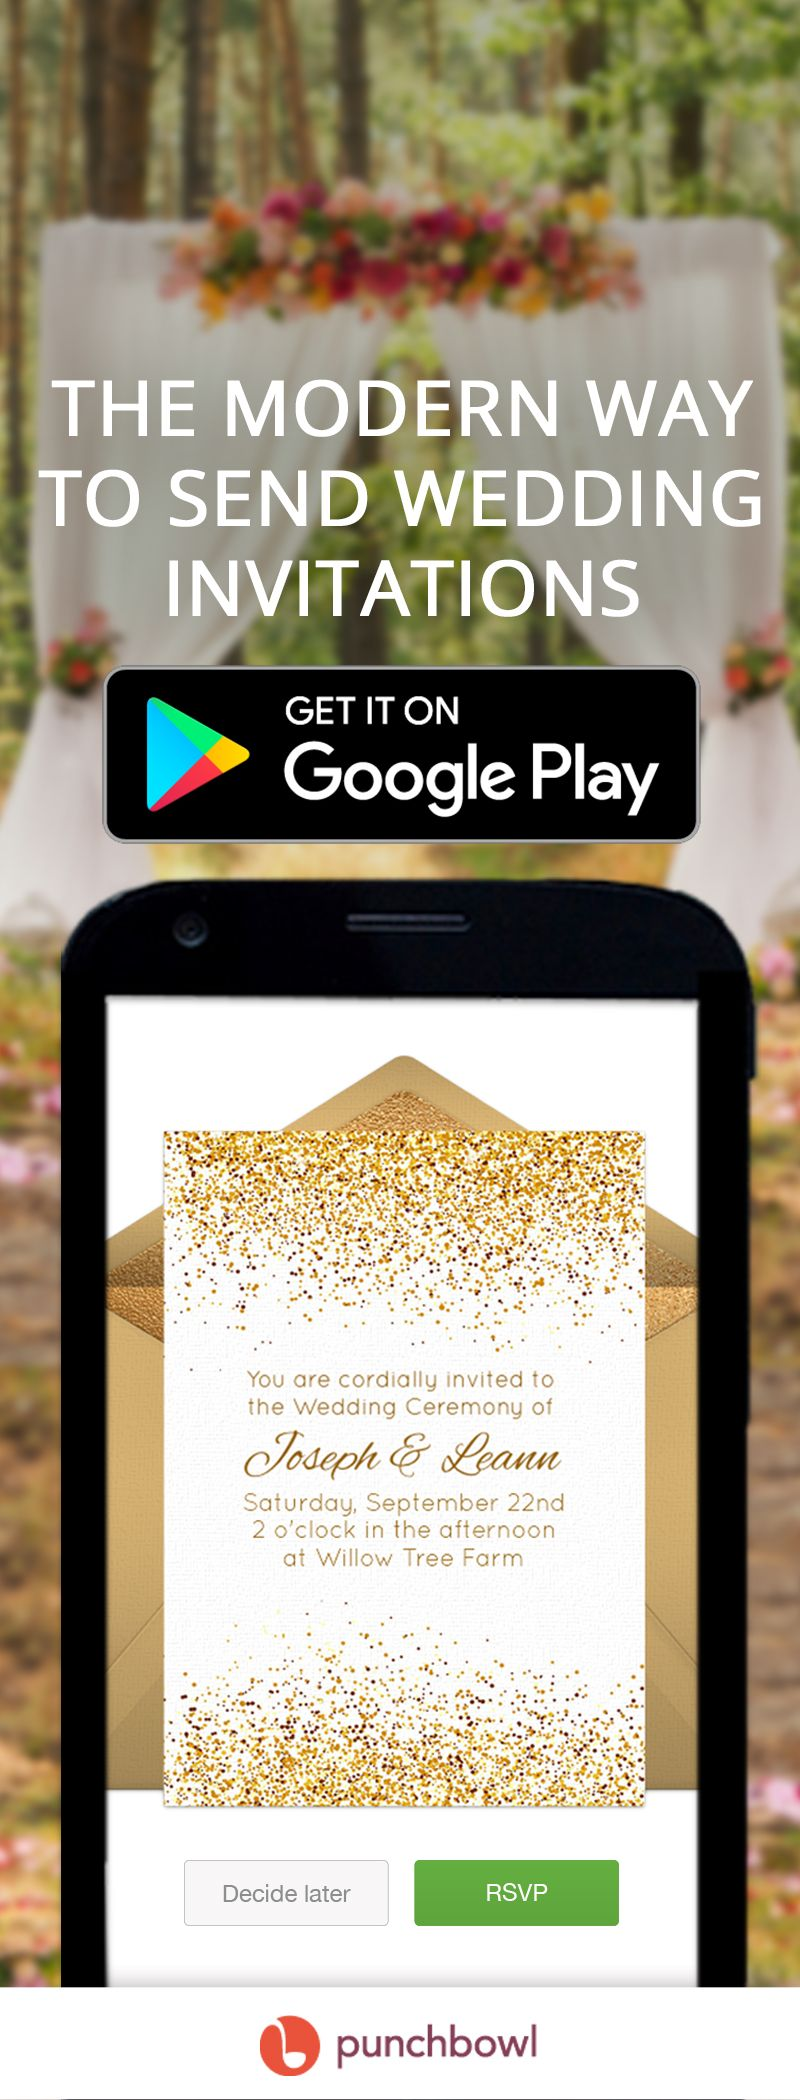 Send Free Digital Wedding Invitations by text message or